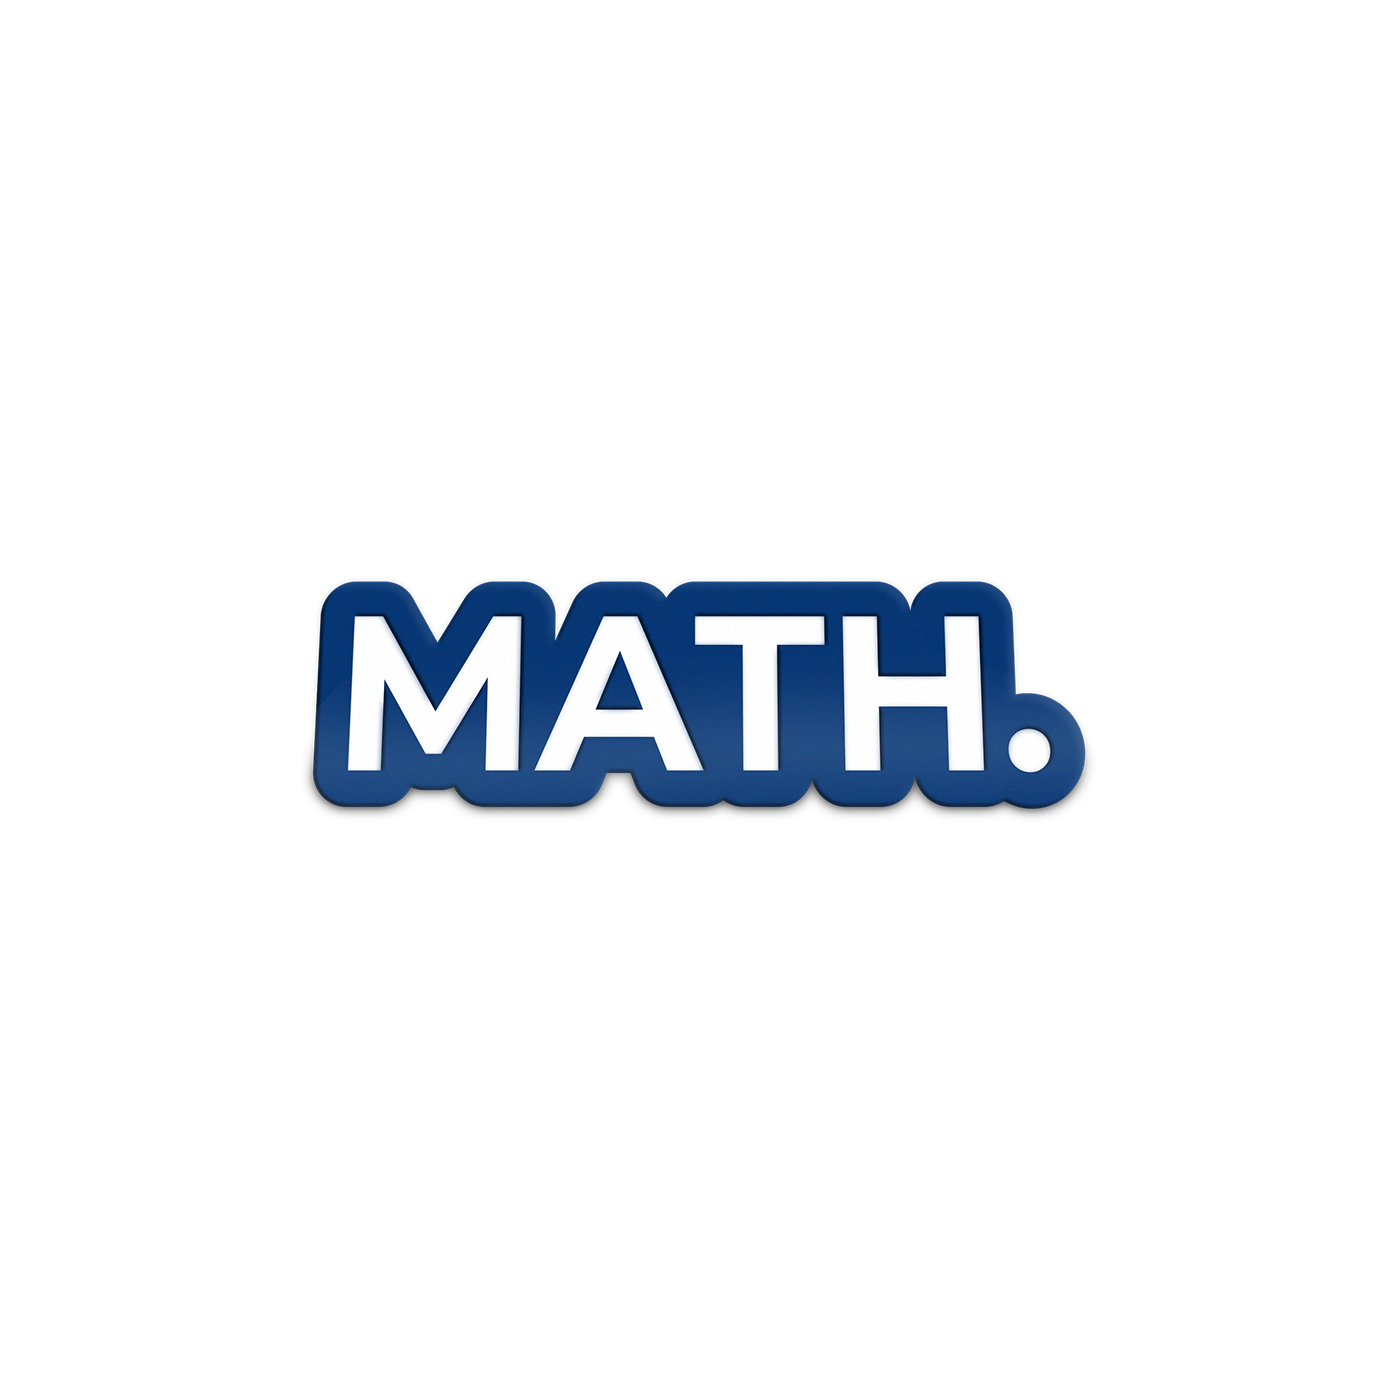 MATH Enamel Lapel Pin